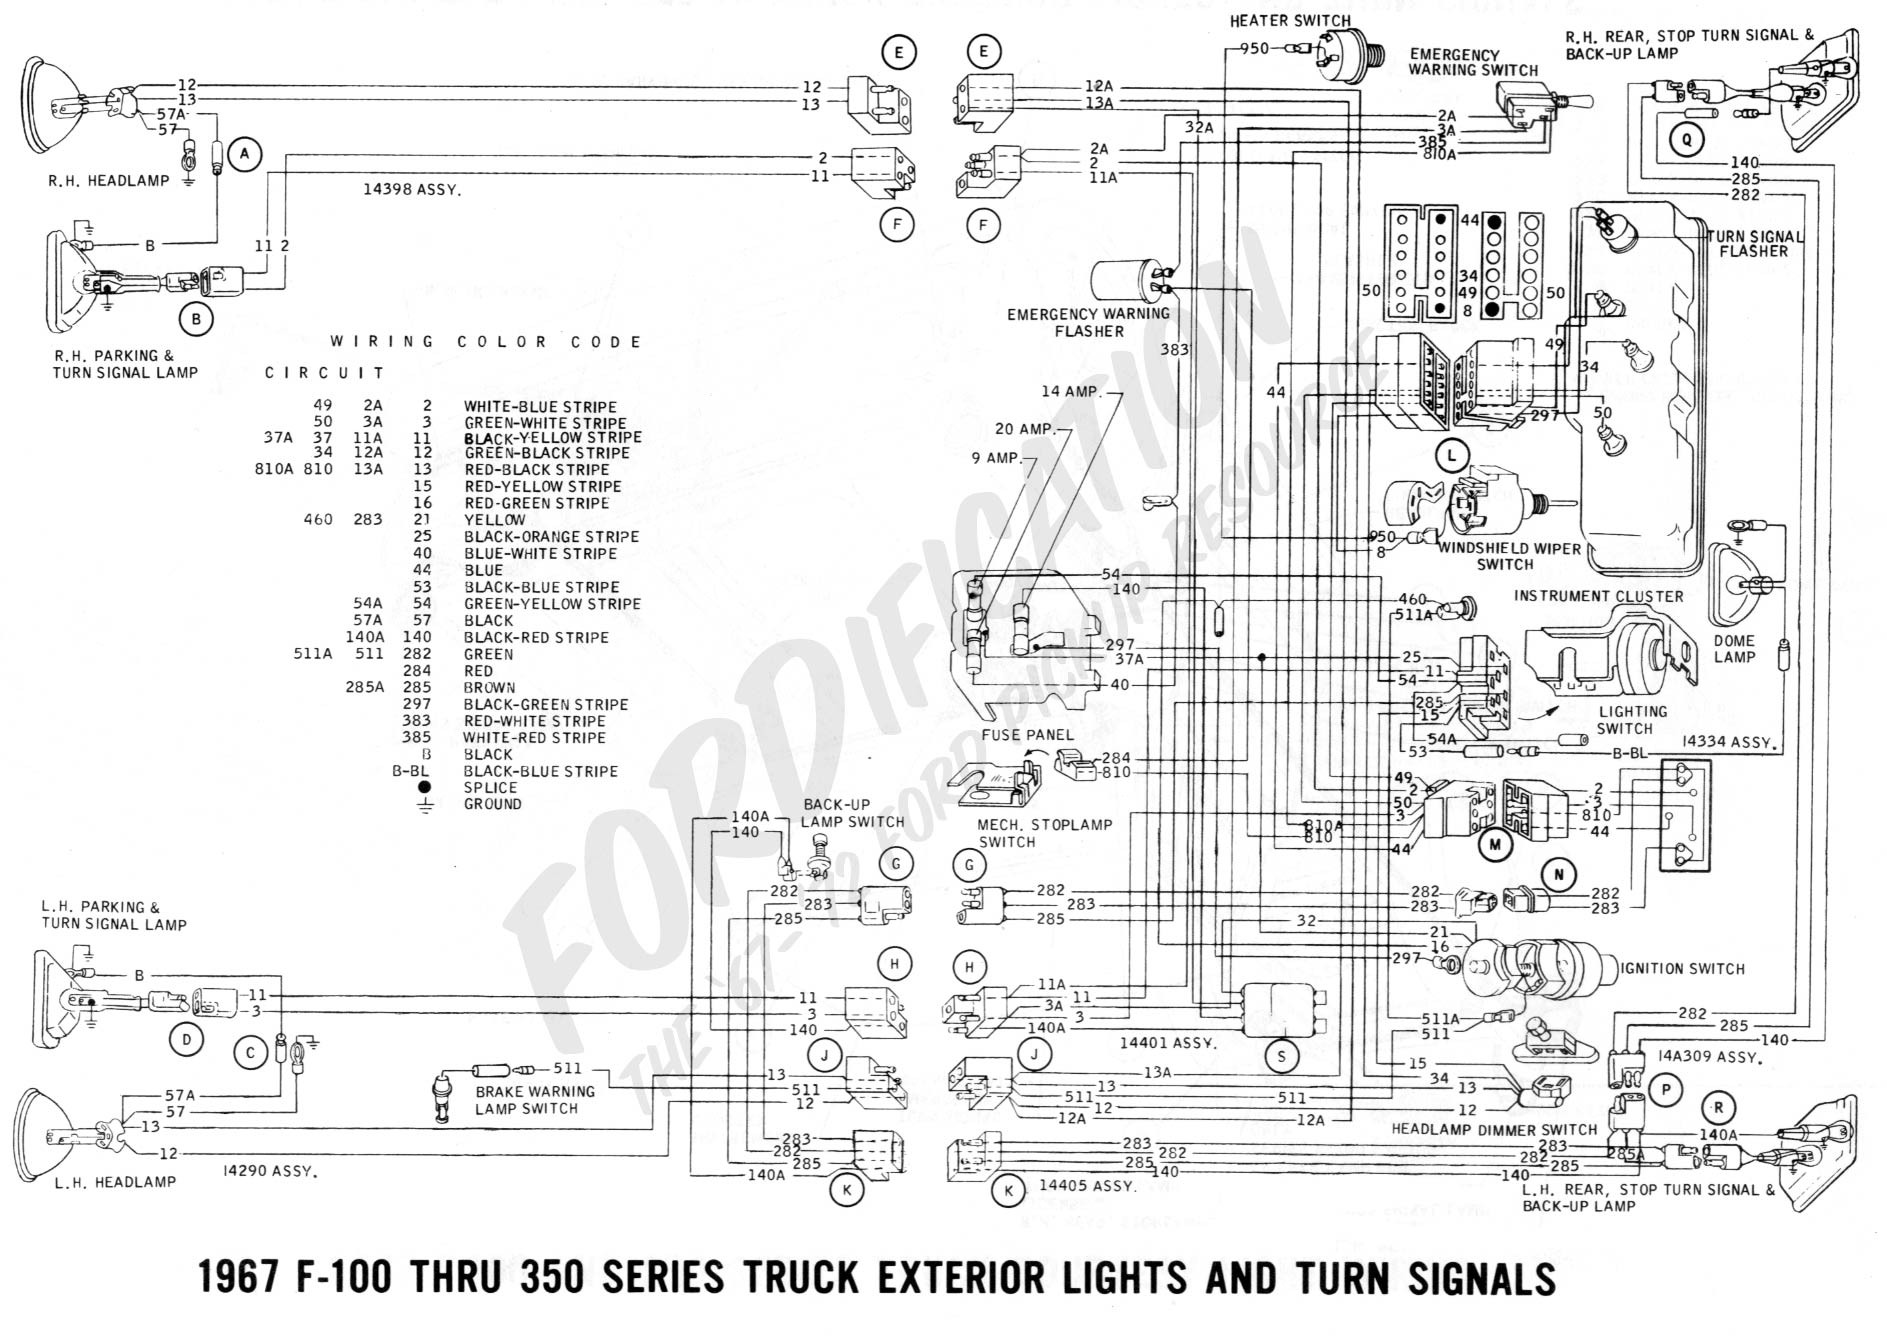 Turn Signal Wiring Diagram ford Truck Technical Drawings and Schematics Section H Wiring Of Turn Signal Wiring Diagram